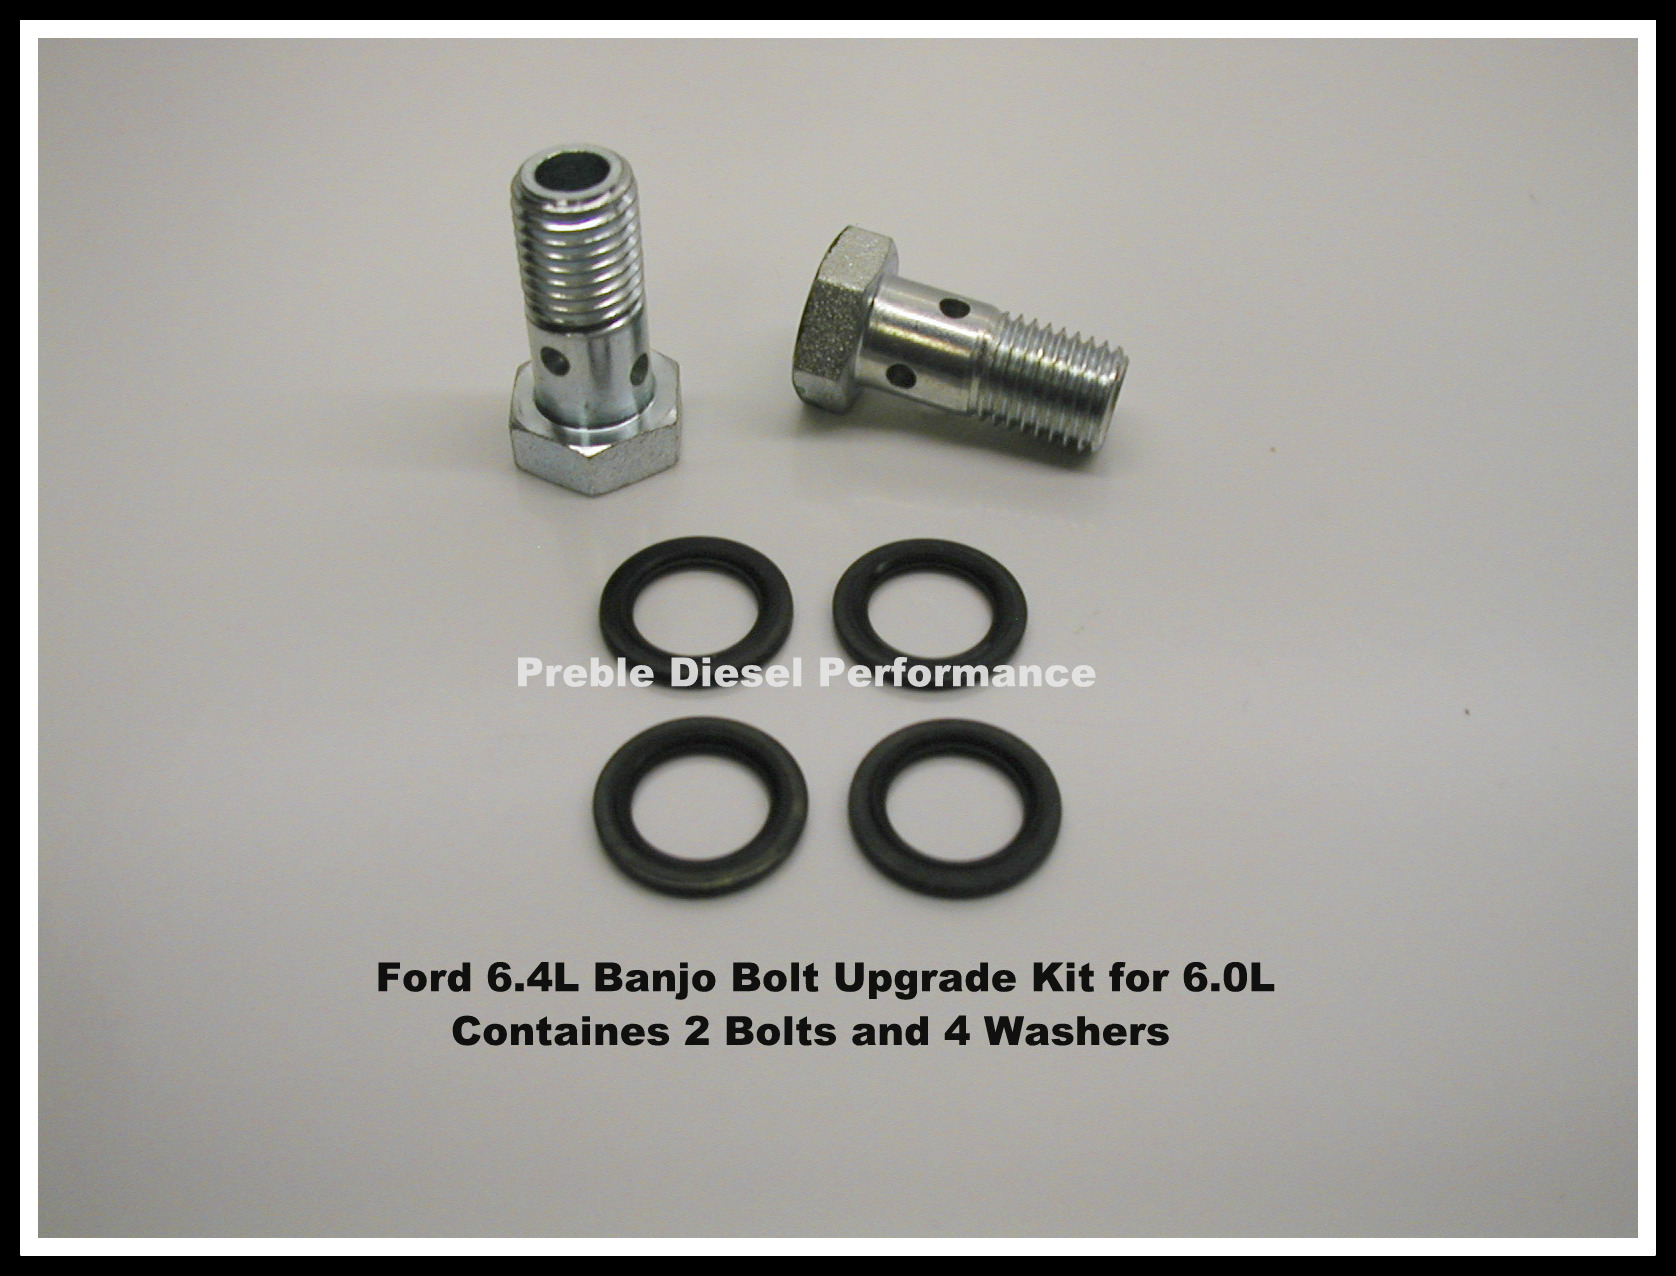 03 07 Ford 60l Necessary Upgrades 2011 F250 Fuel Filter Housing 64l Banjo Bolt Upgrade Kit